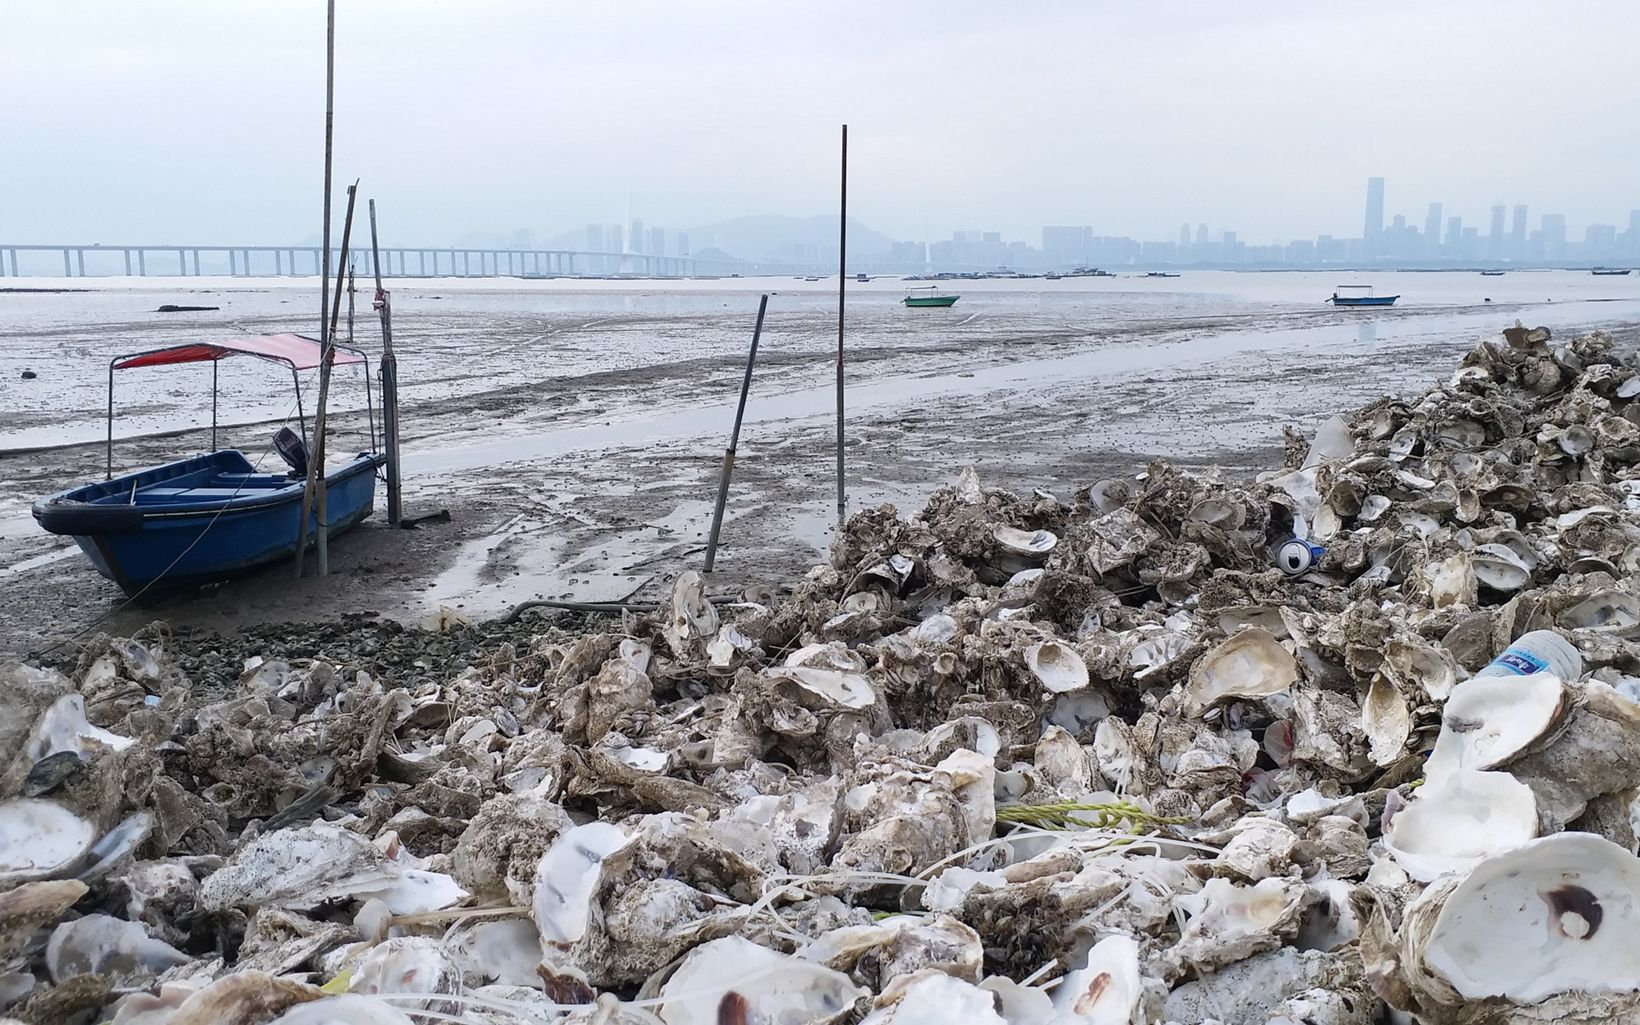 Oyster shells are discarded along the shoreline near Deep Bay.